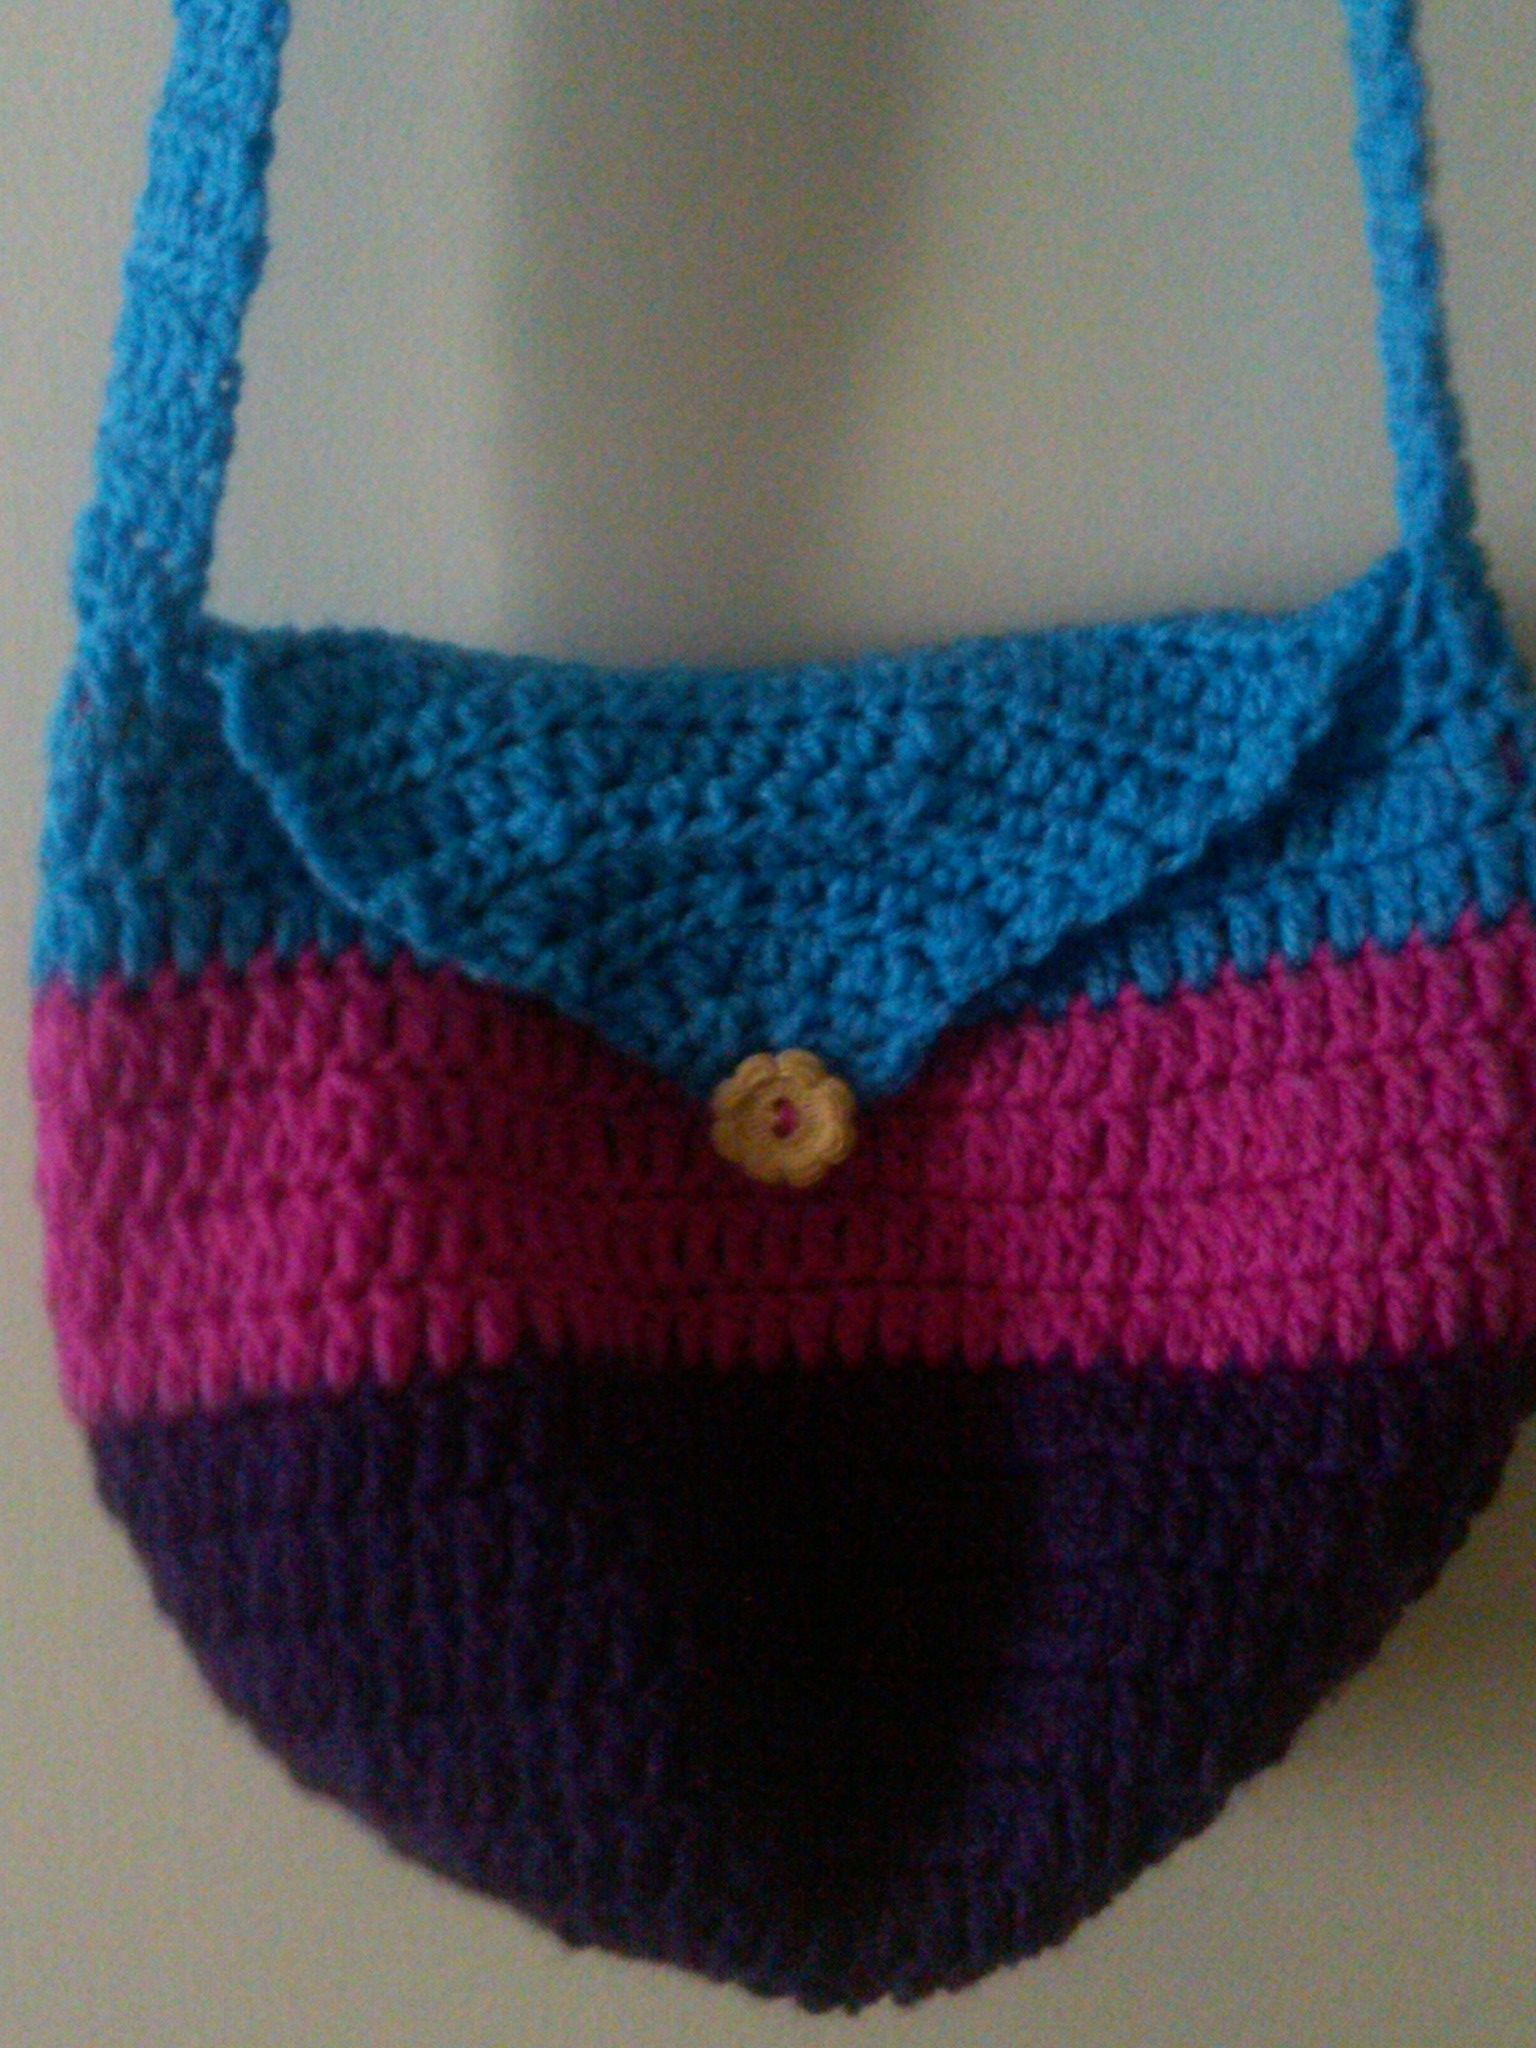 Crochet Purse With 3 Colors And Long Strap Purseswithlongstraps